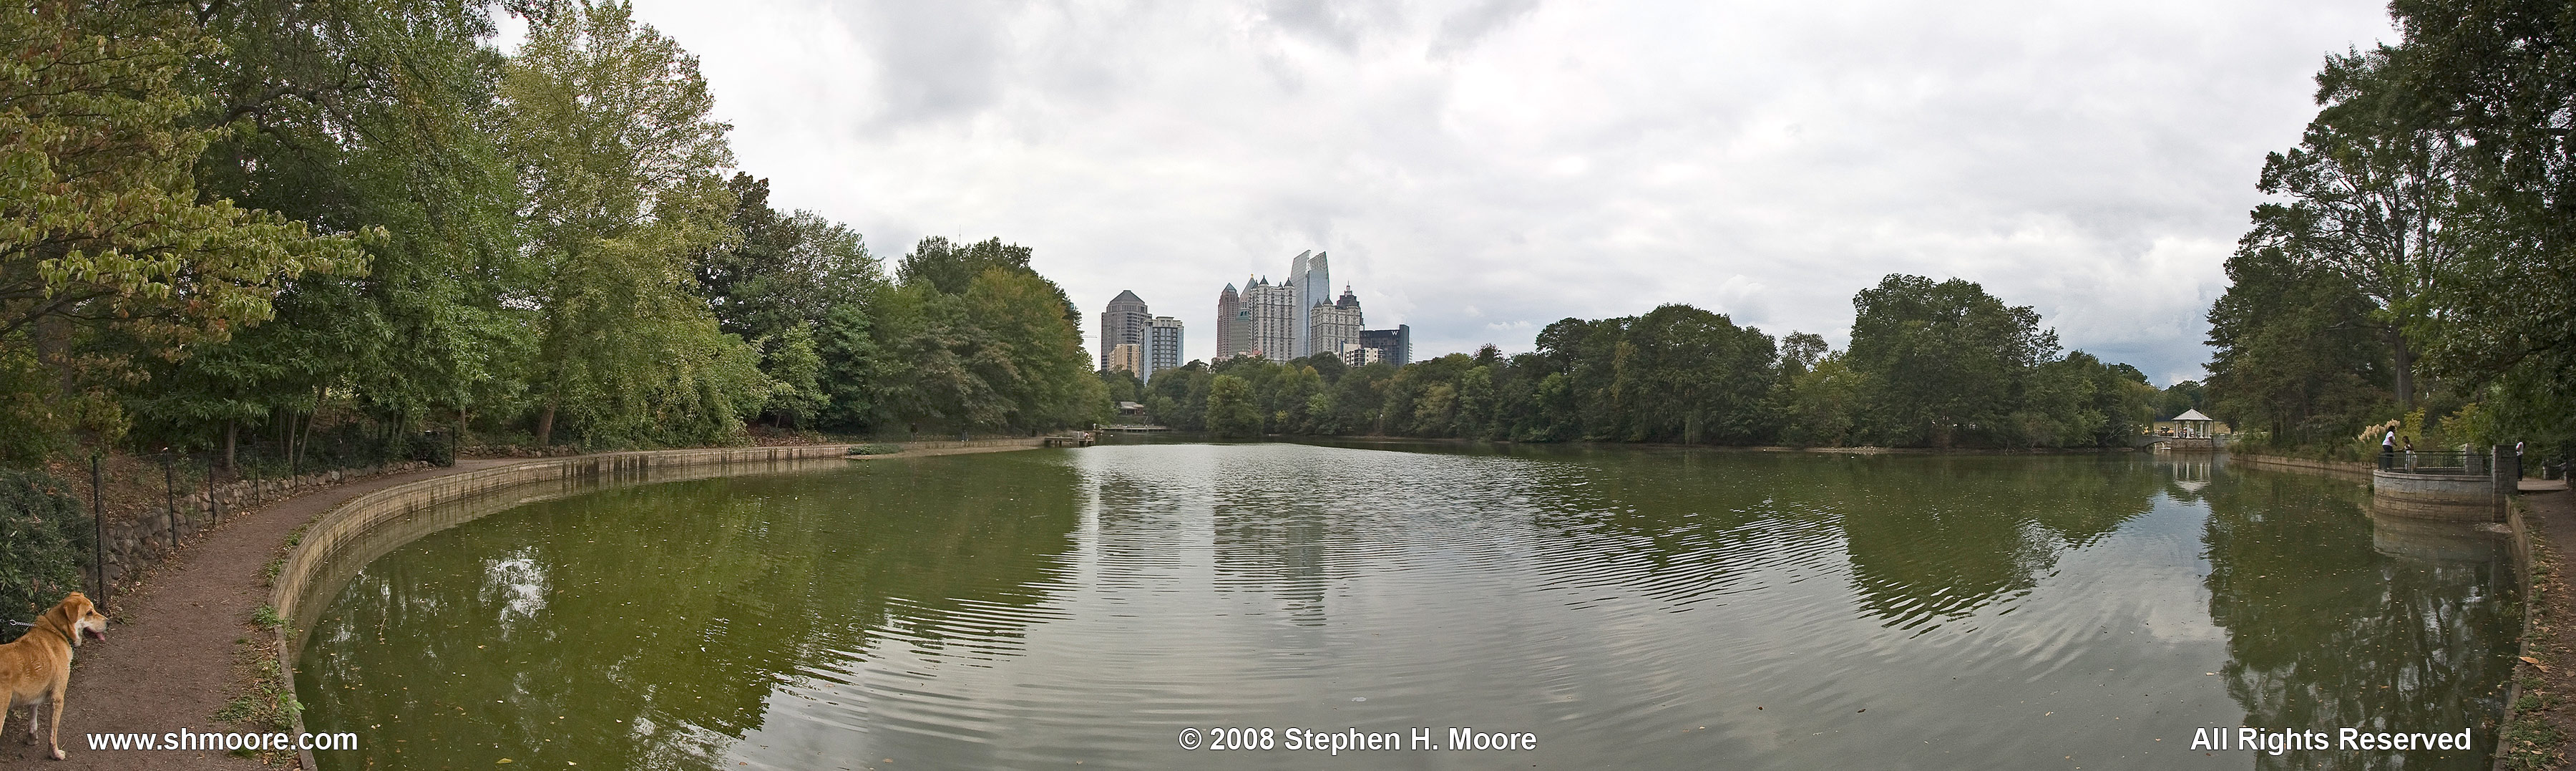 27-September-2008-Piedmont-Park-Panorama-(web).jpg